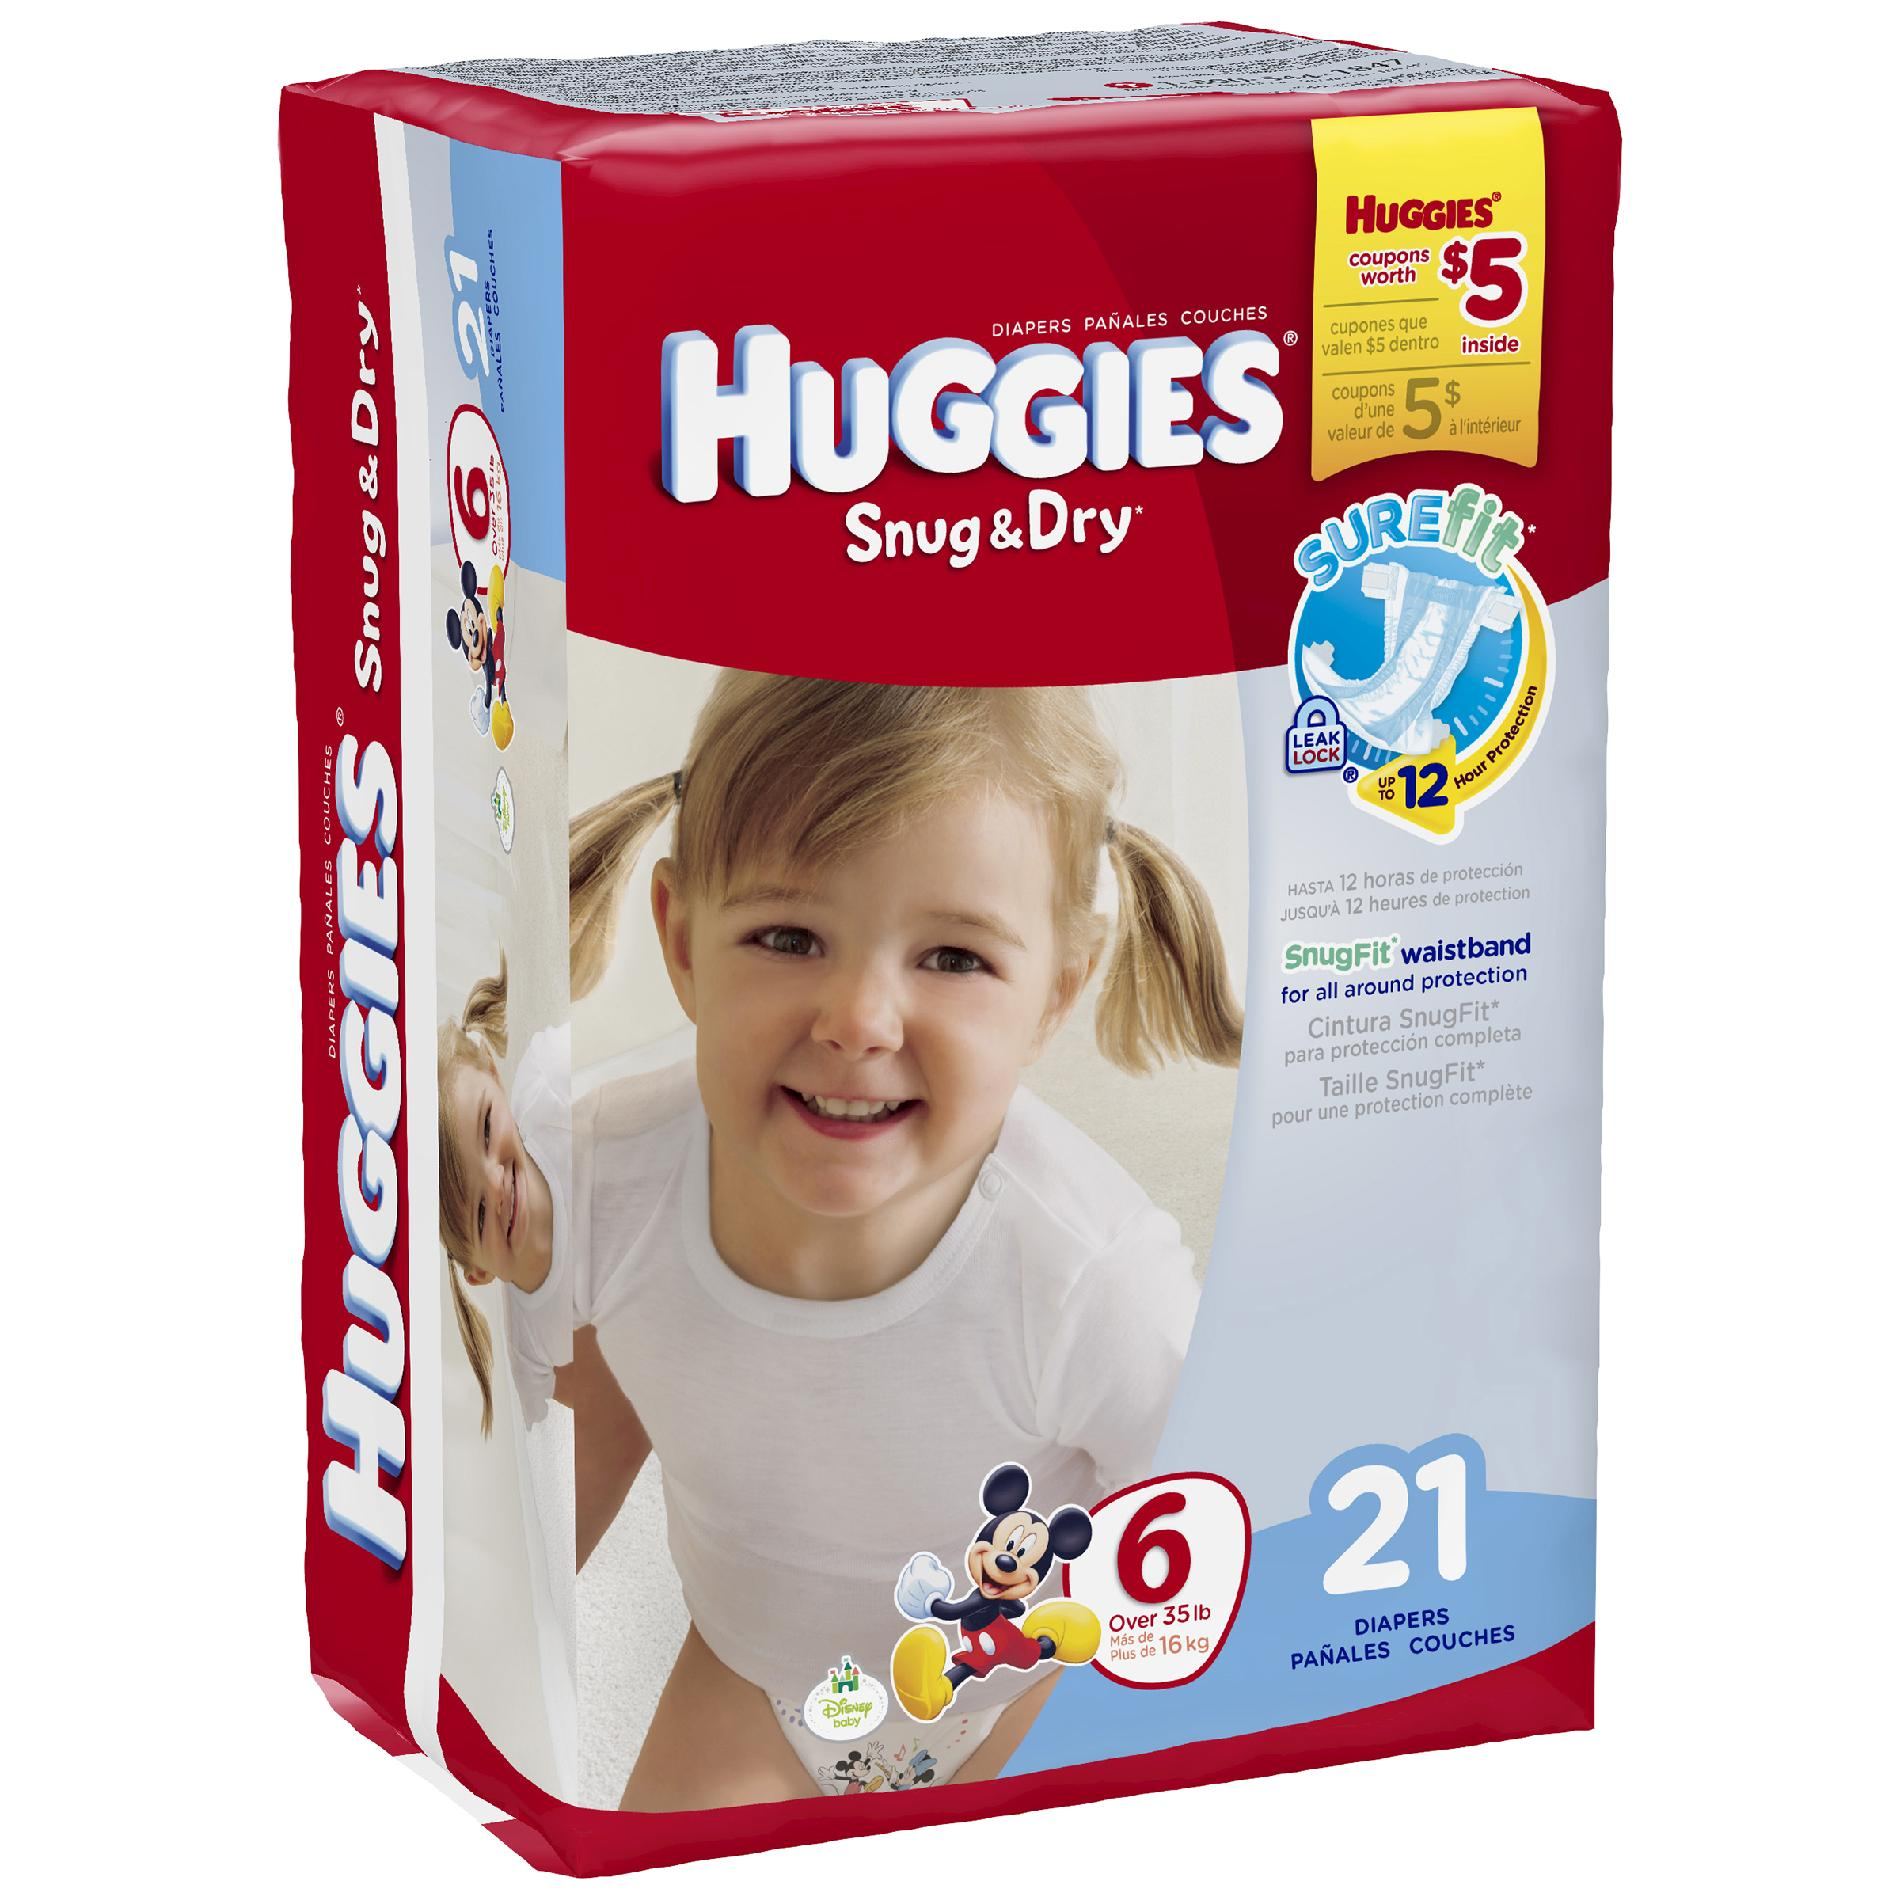 Huggies Snug & Dry Diapers (see all sizes)